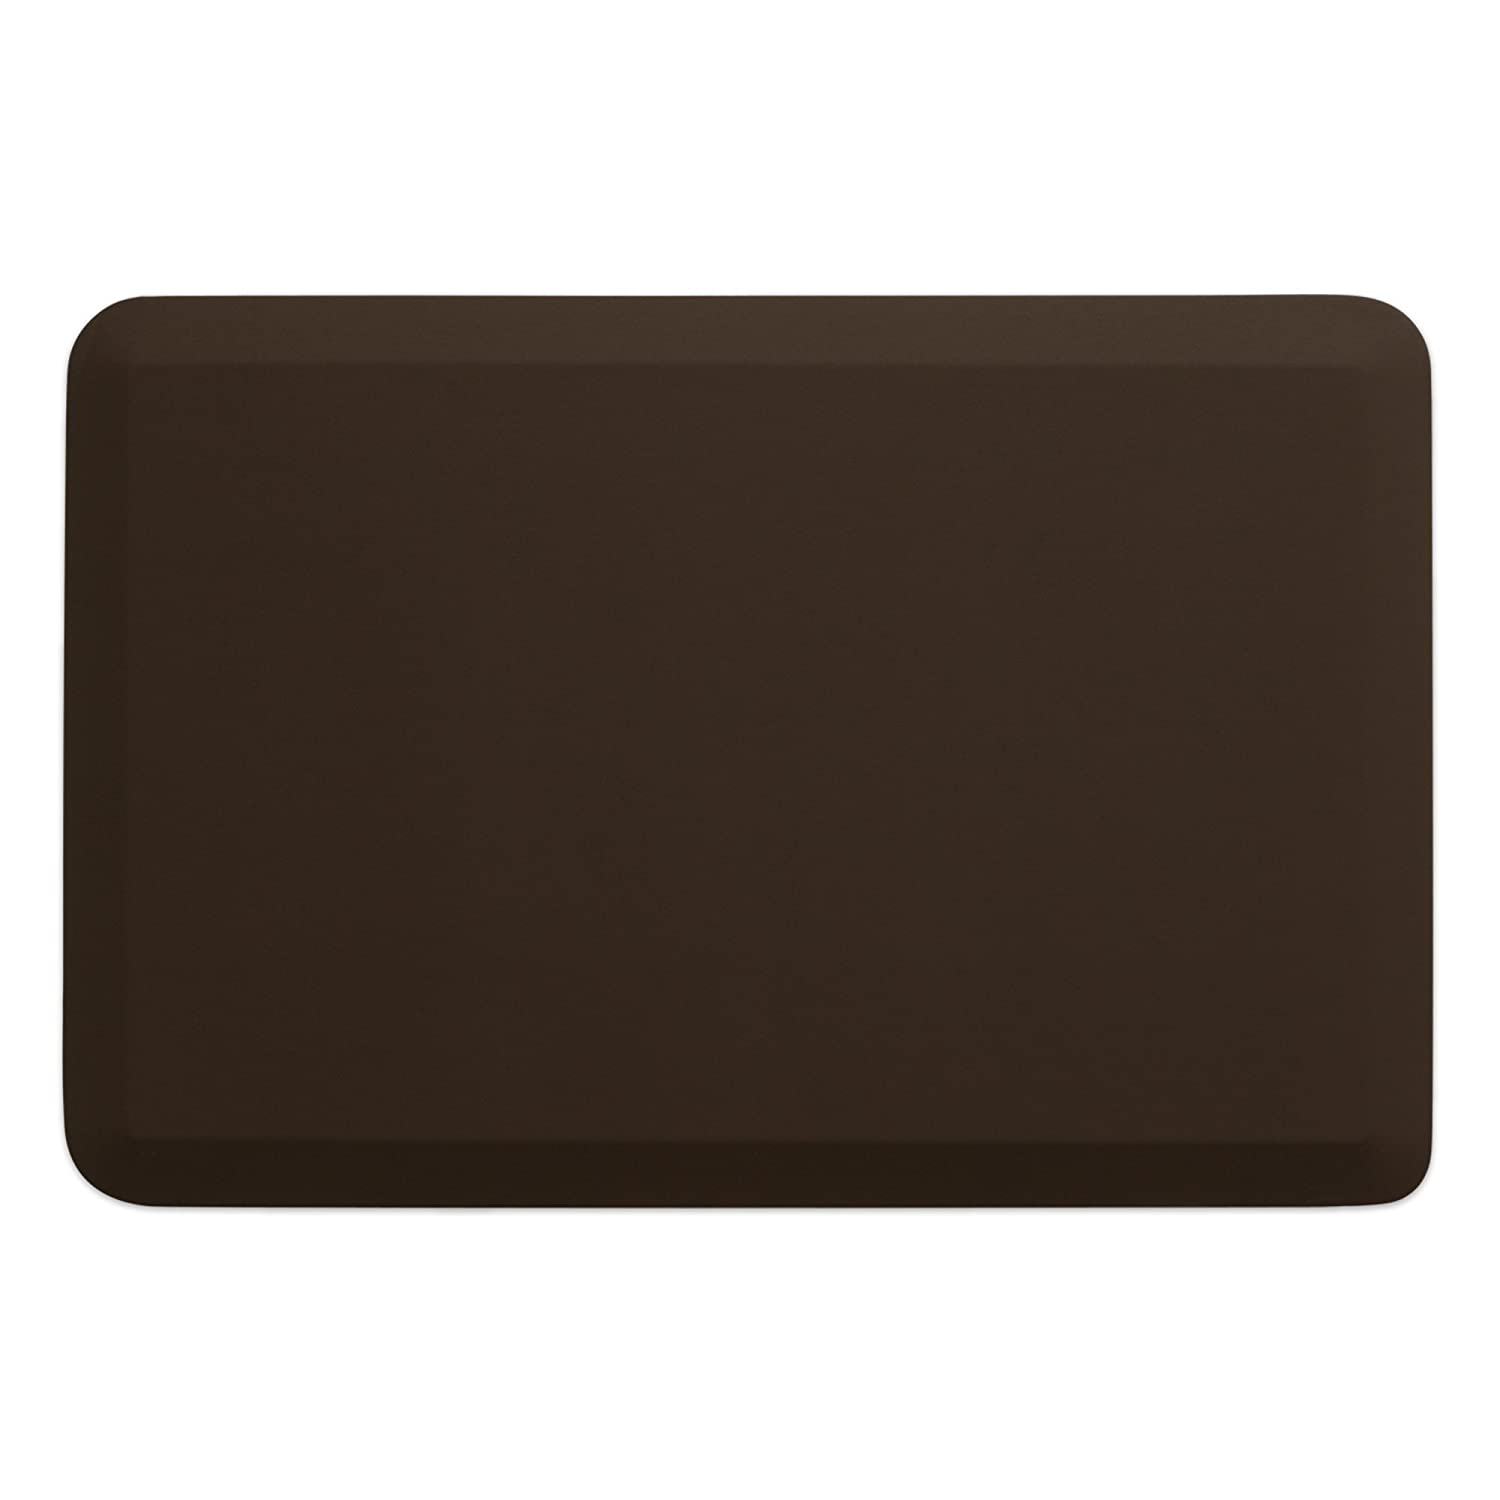 """New Life by GelPro Professional Grade Anti-Fatigue Kitchen & office Comfort Mat, 24x36, Earth ¾"""" Bio-Foam Mat with Non-Slip Bottom For Health & Wellness"""